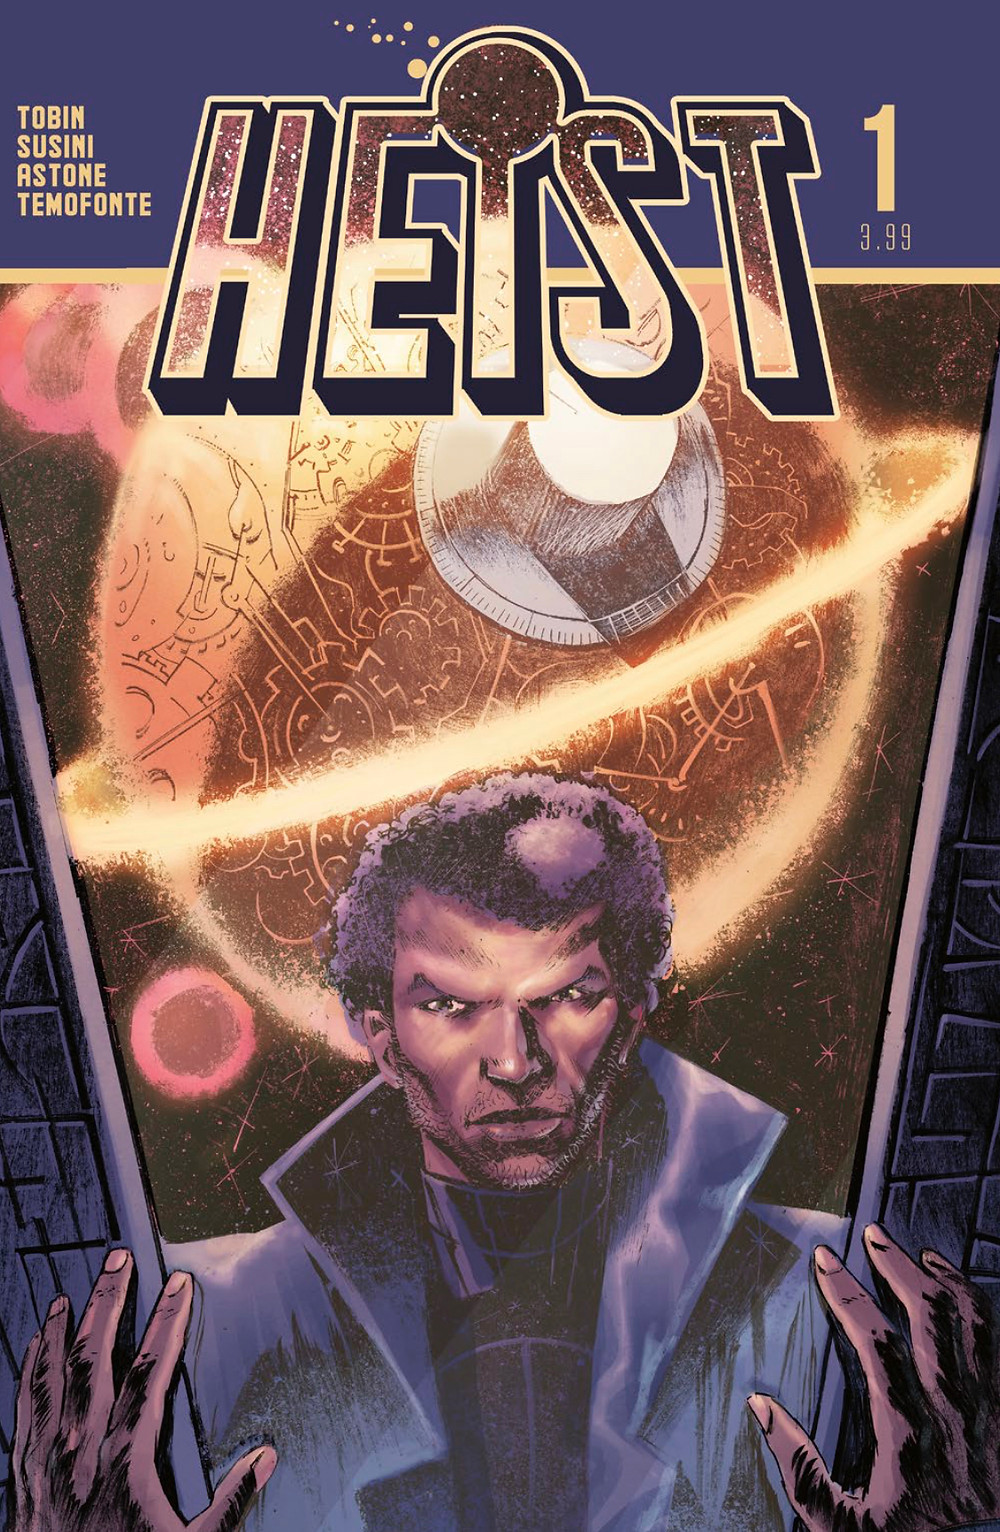 Heist, issue #1, cover, Vault Comics, Tobin/Susini